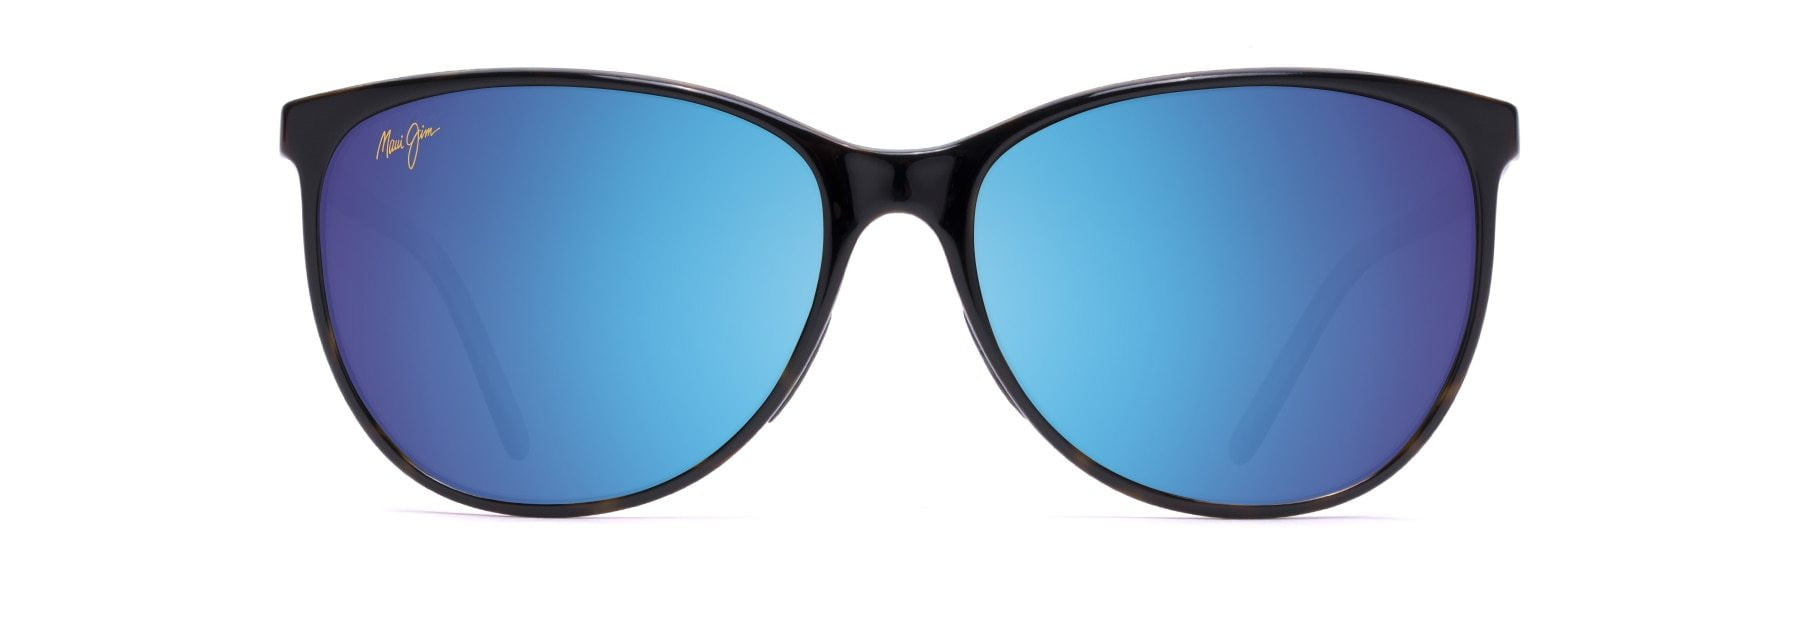 MyMaui Ocean MM723-019 Sunglasses